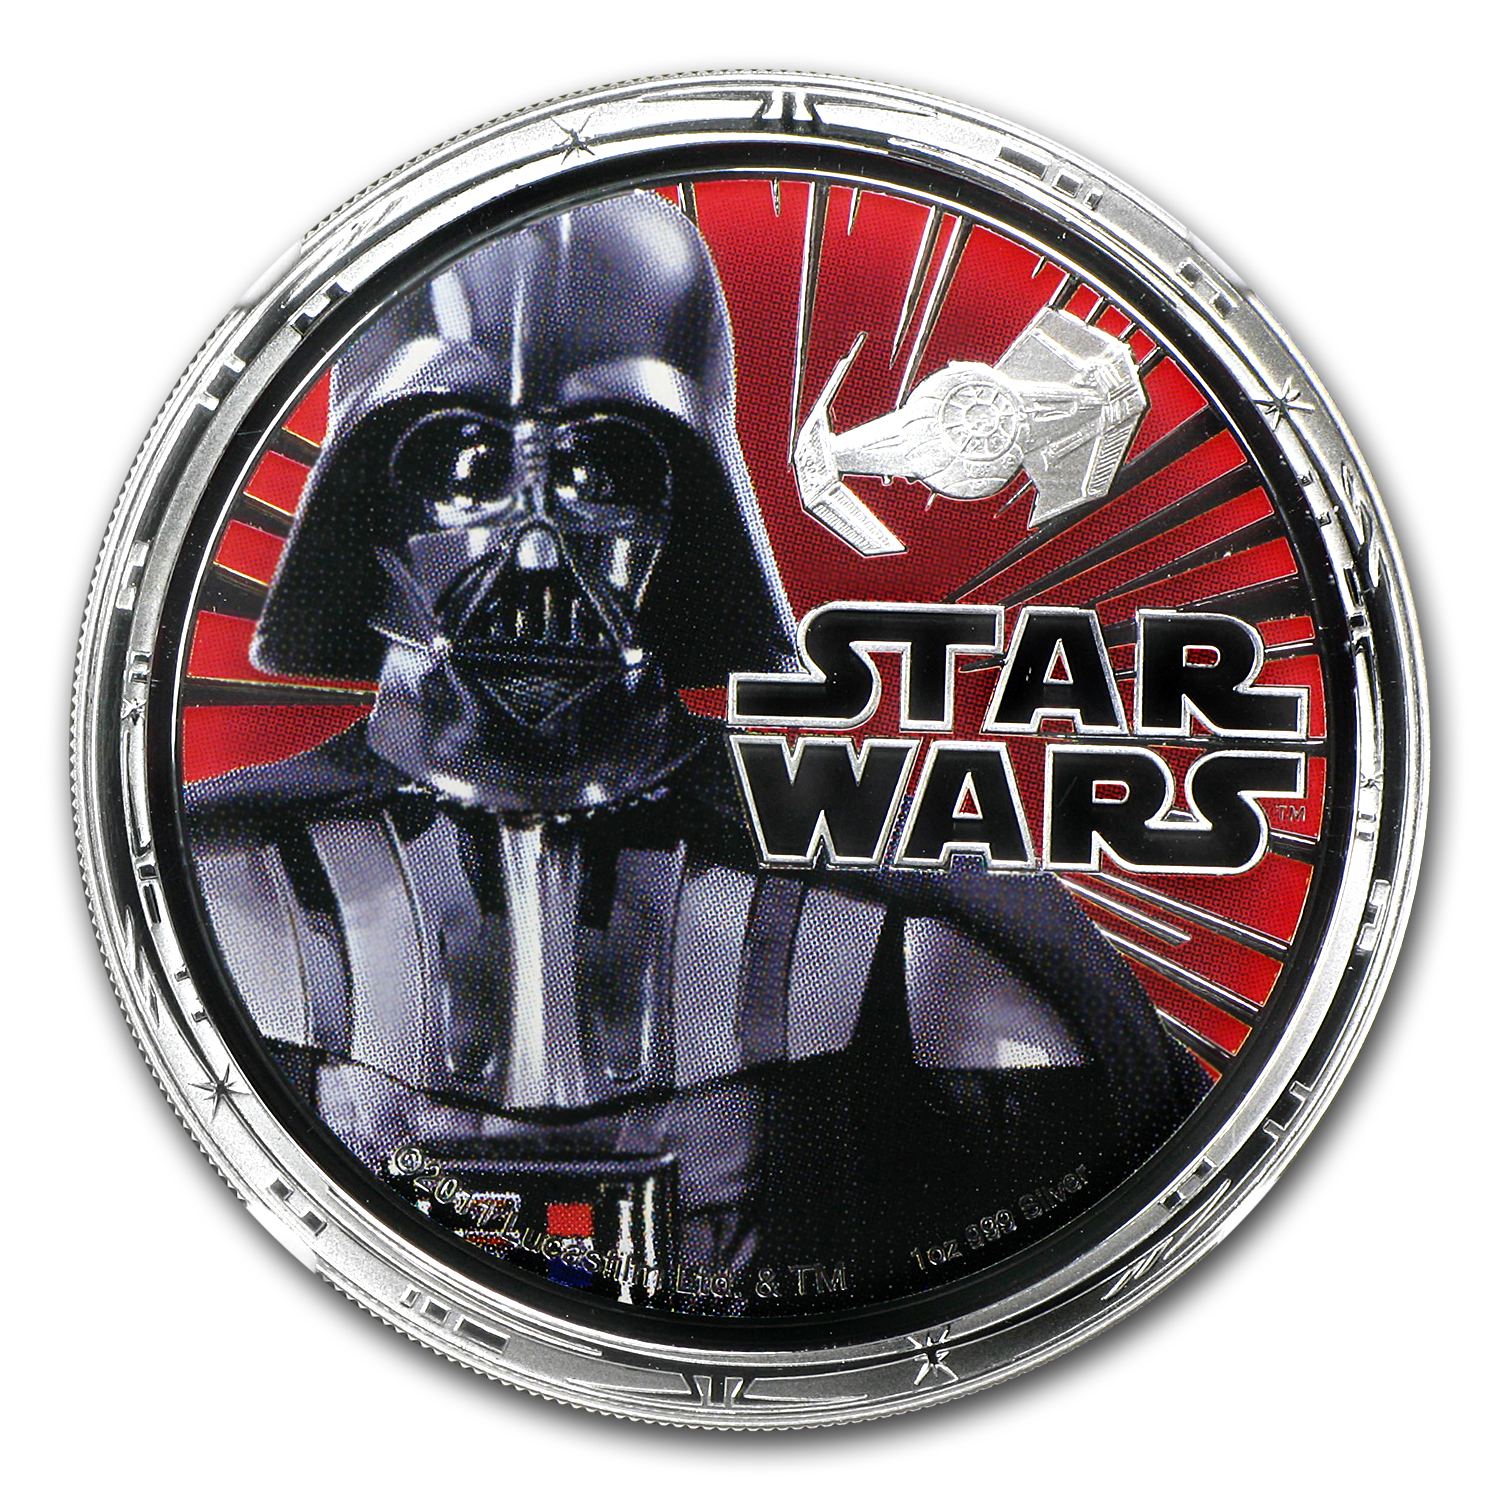 2011 Niue 1 oz Silver $2 Star Wars Darth Vader PF-69 NGC